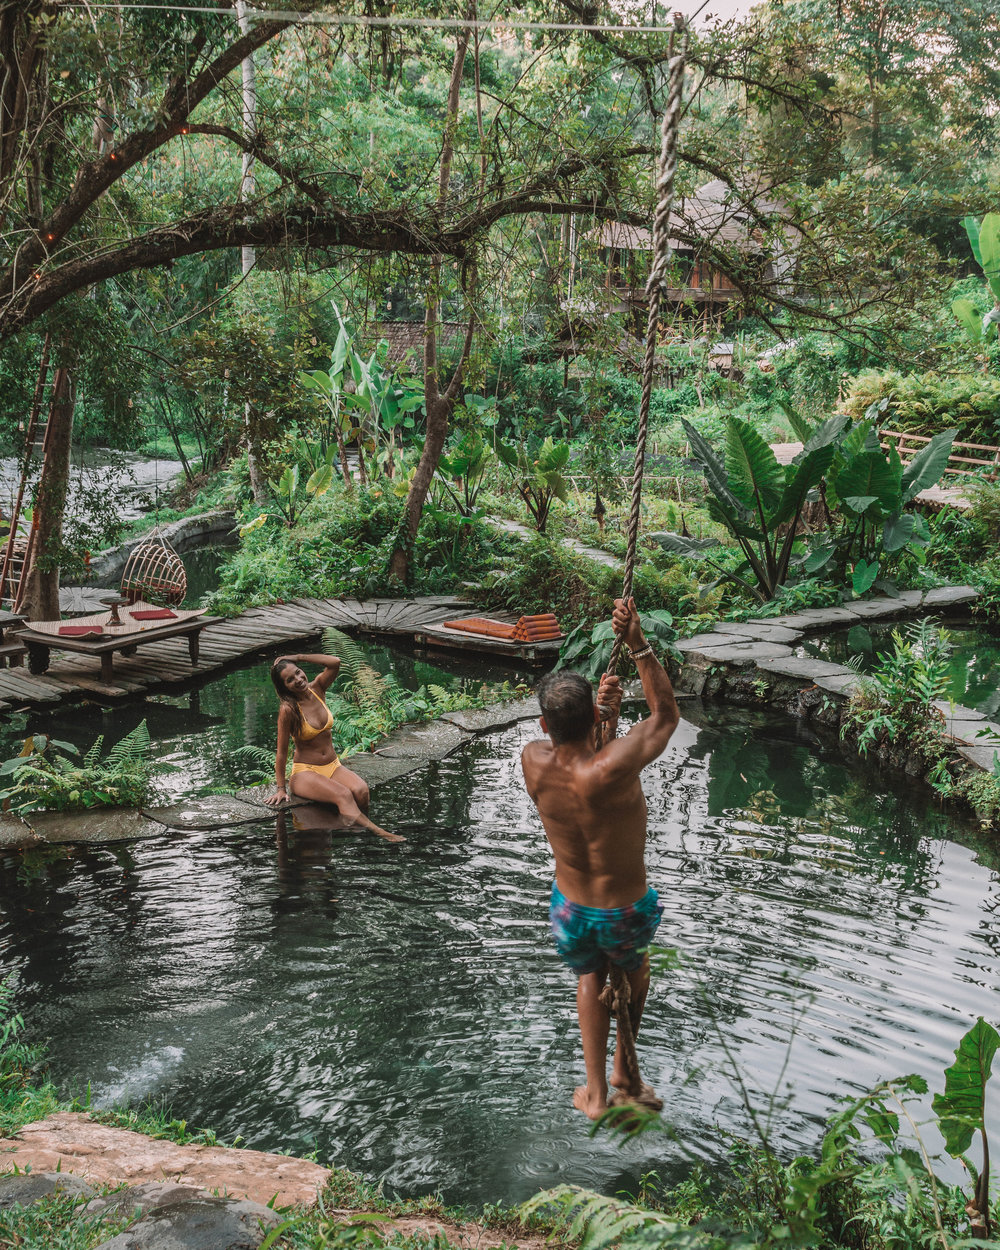 Sunset romance at bambu indah jungle tent natural pool swing adventure couple fun love freeoversea nature vibes best hotels bali ubud